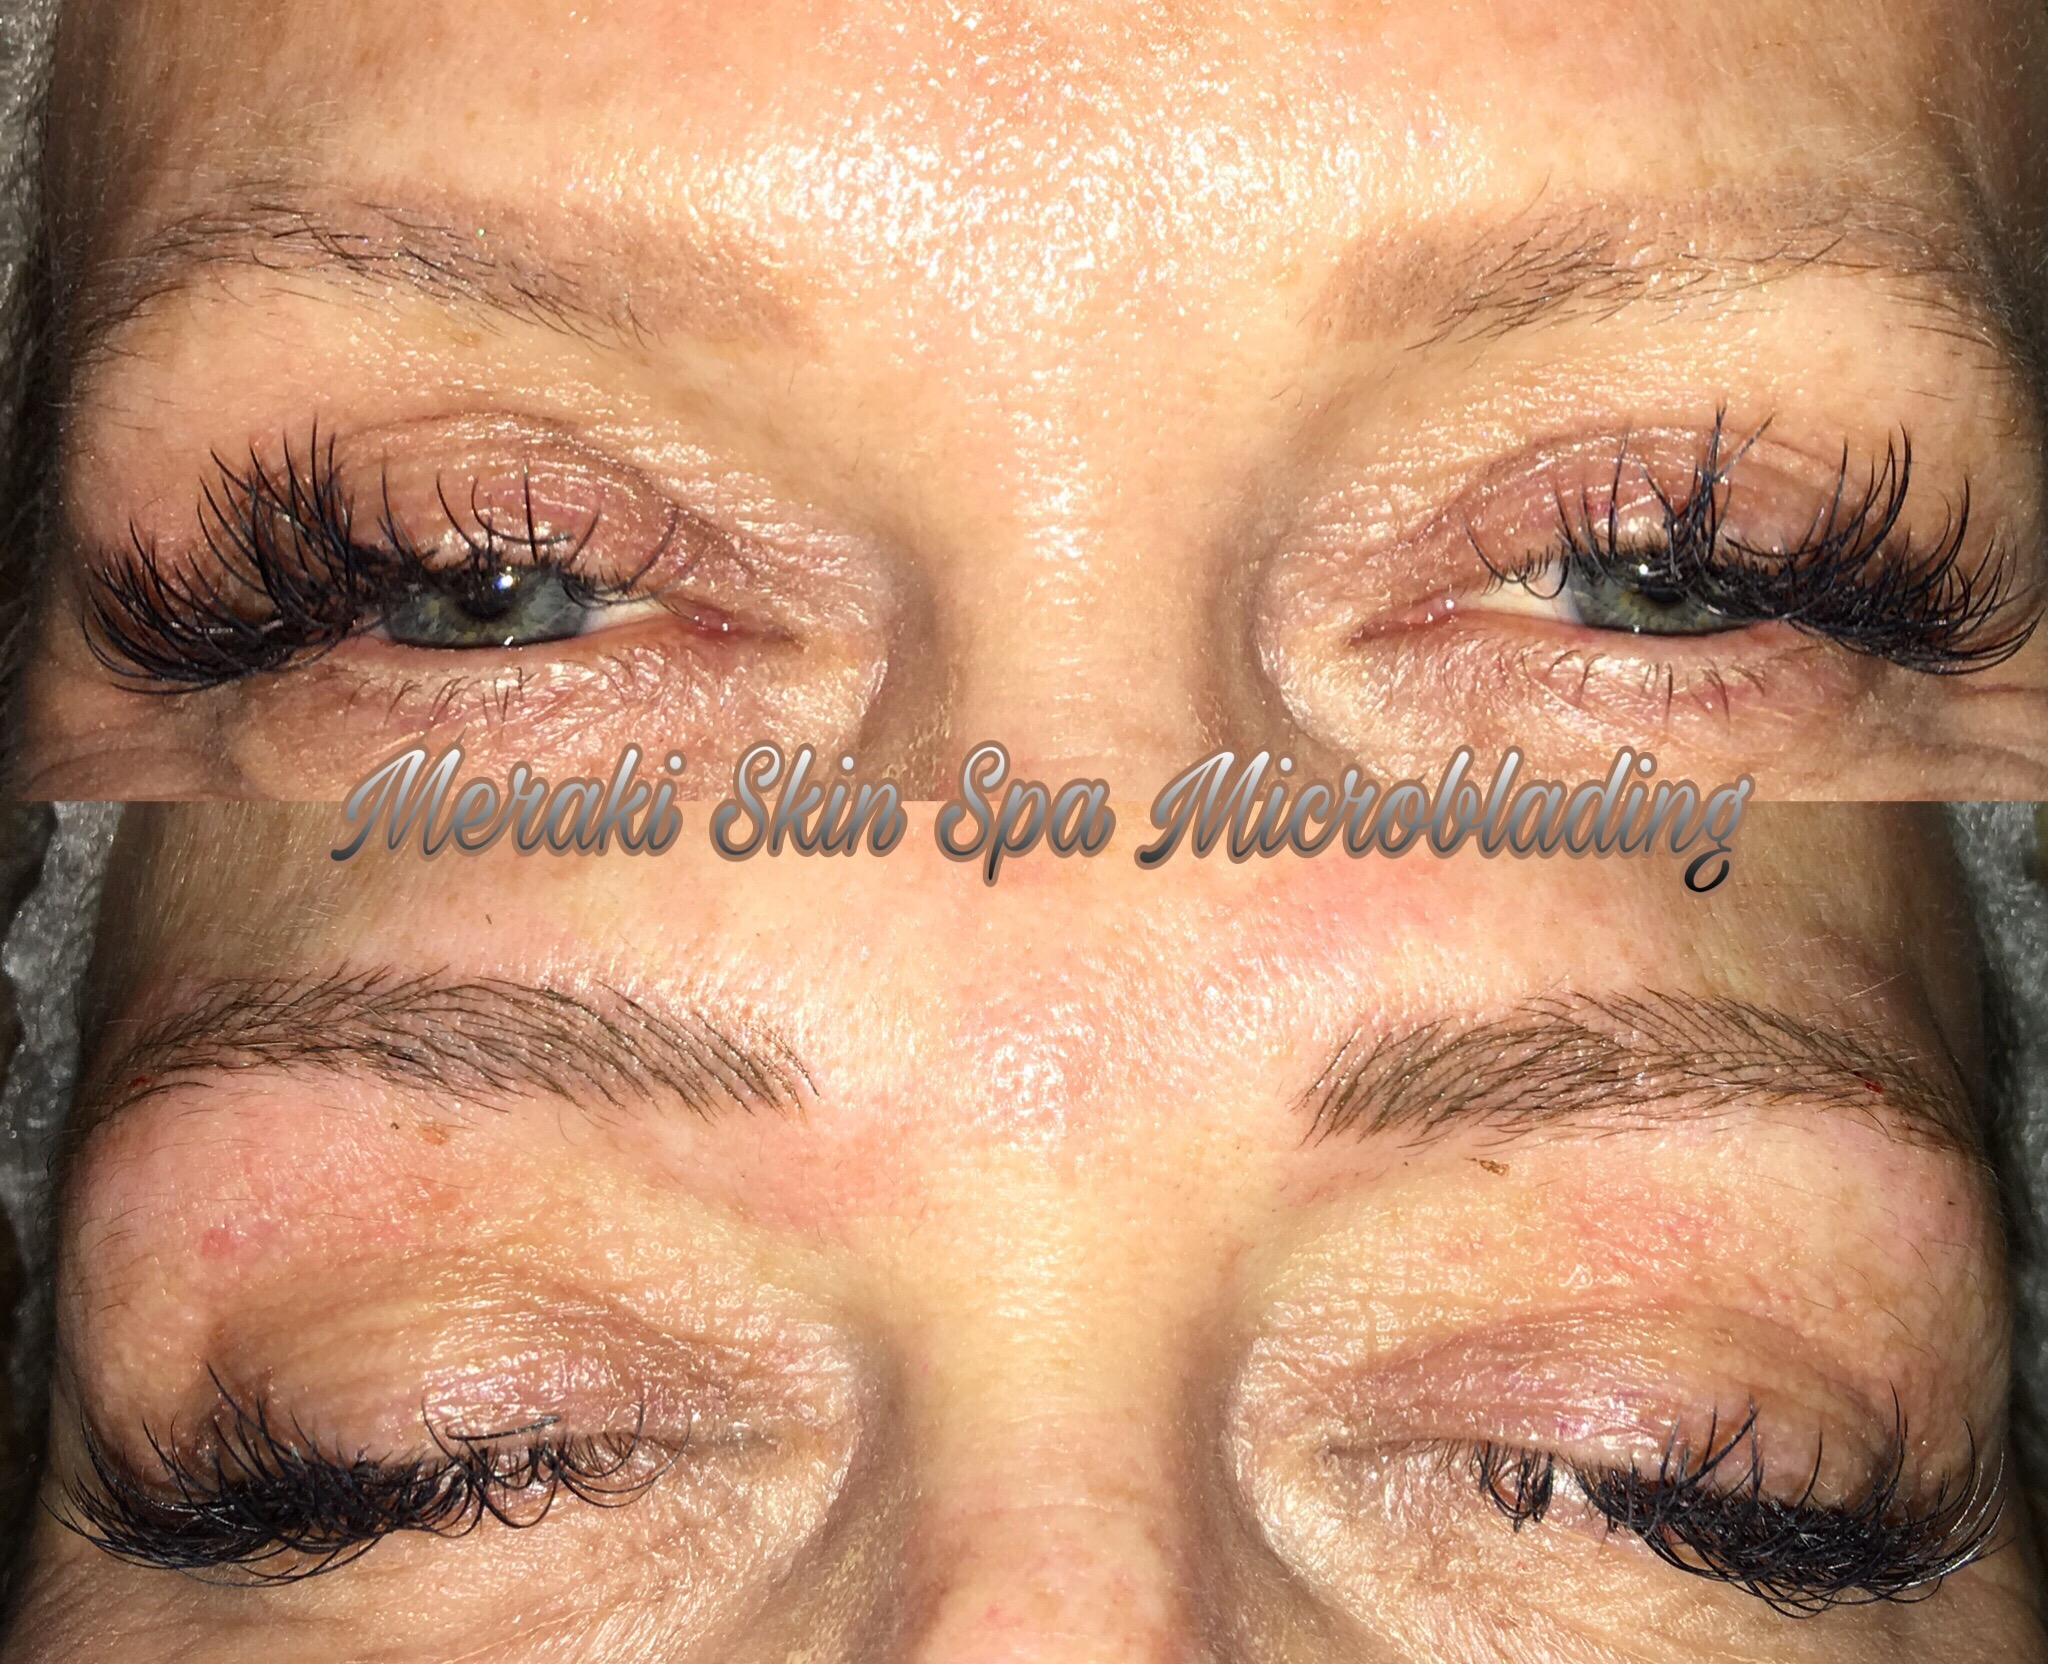 ALT TEXT Permanent Cosmetics - Permanent Eyebrows - Permanent Makeup - Microblading - meridian idaho